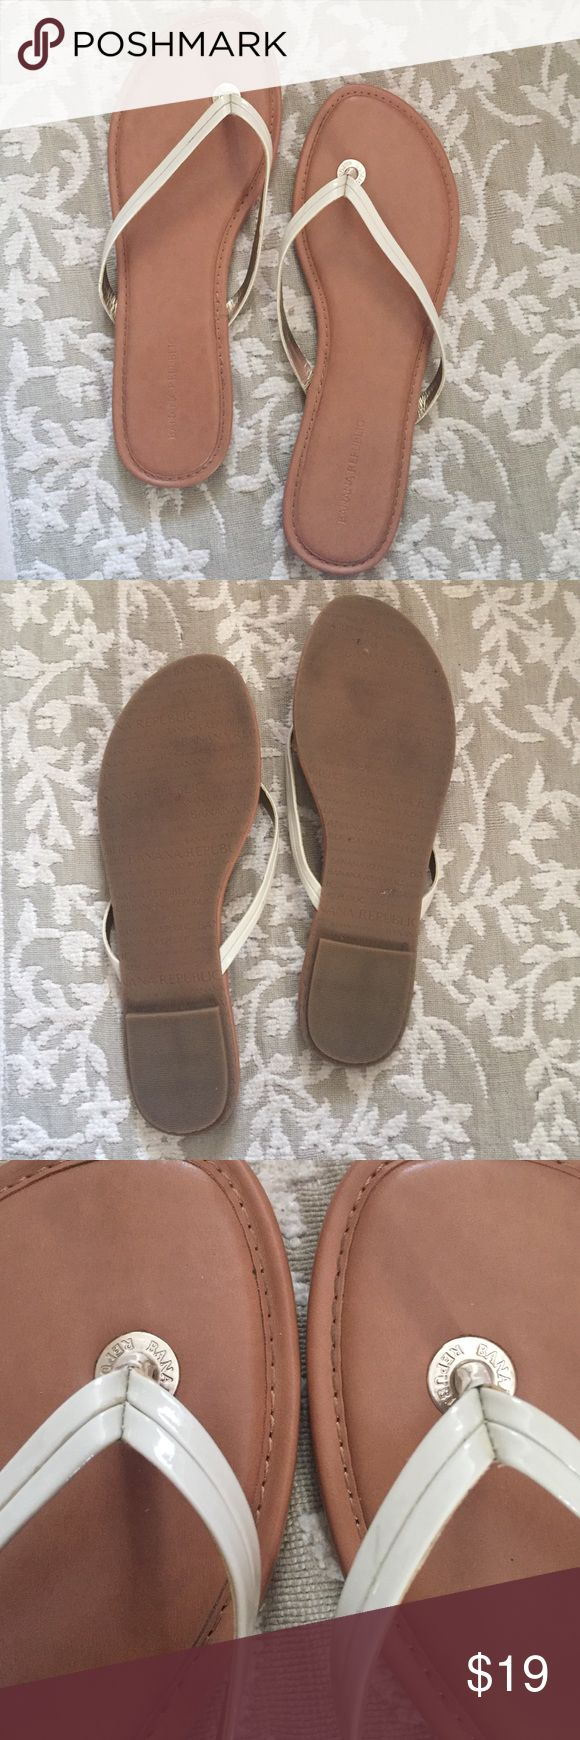 Cream flip flops Shiny thin cream strap flip flops. Gold accents. Super gently worn with love! ✨ Banana Republic Shoes Sandals